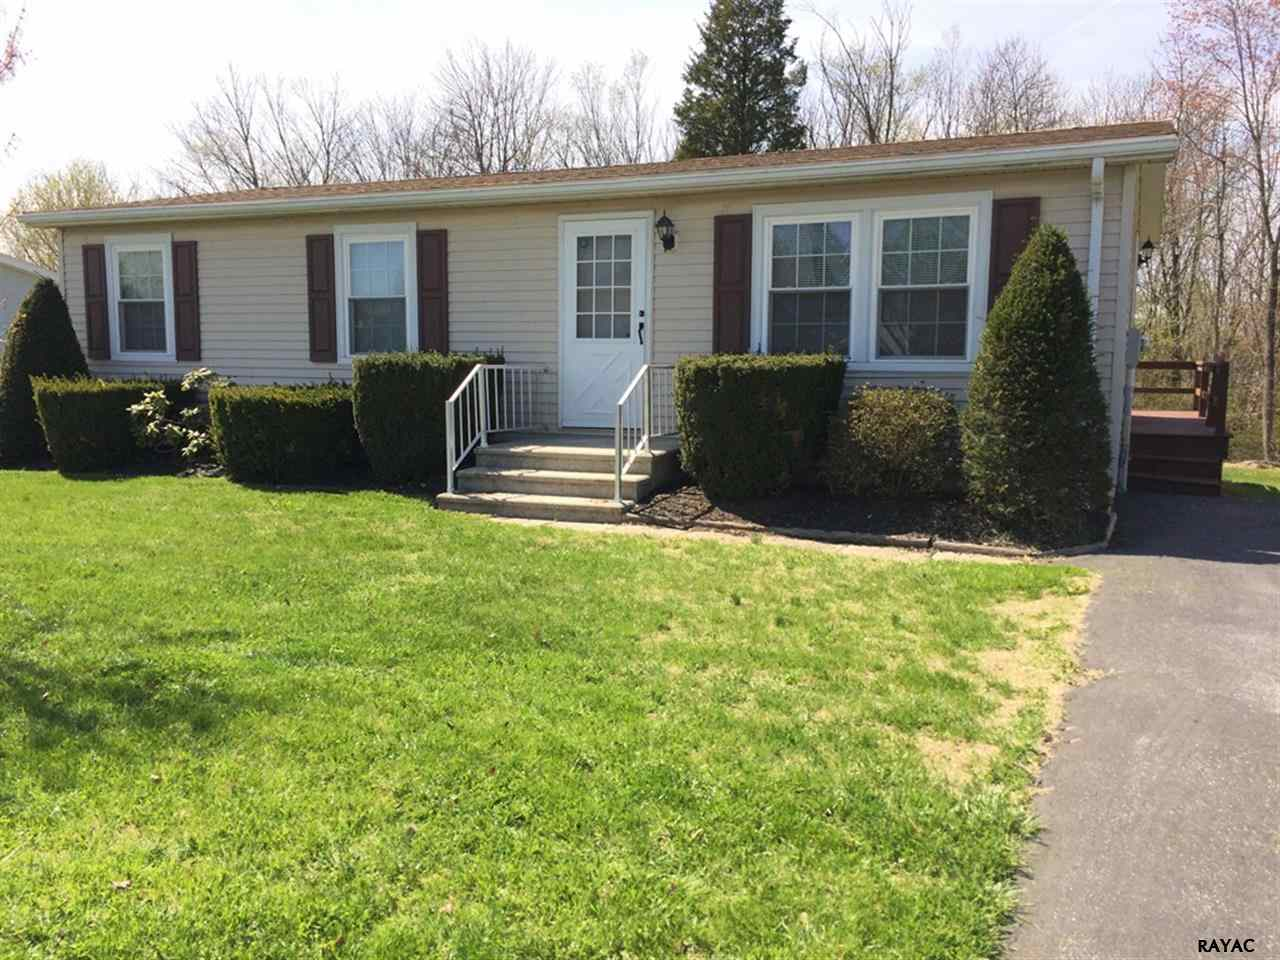 73 E Locust Ln, New Oxford, PA 17350